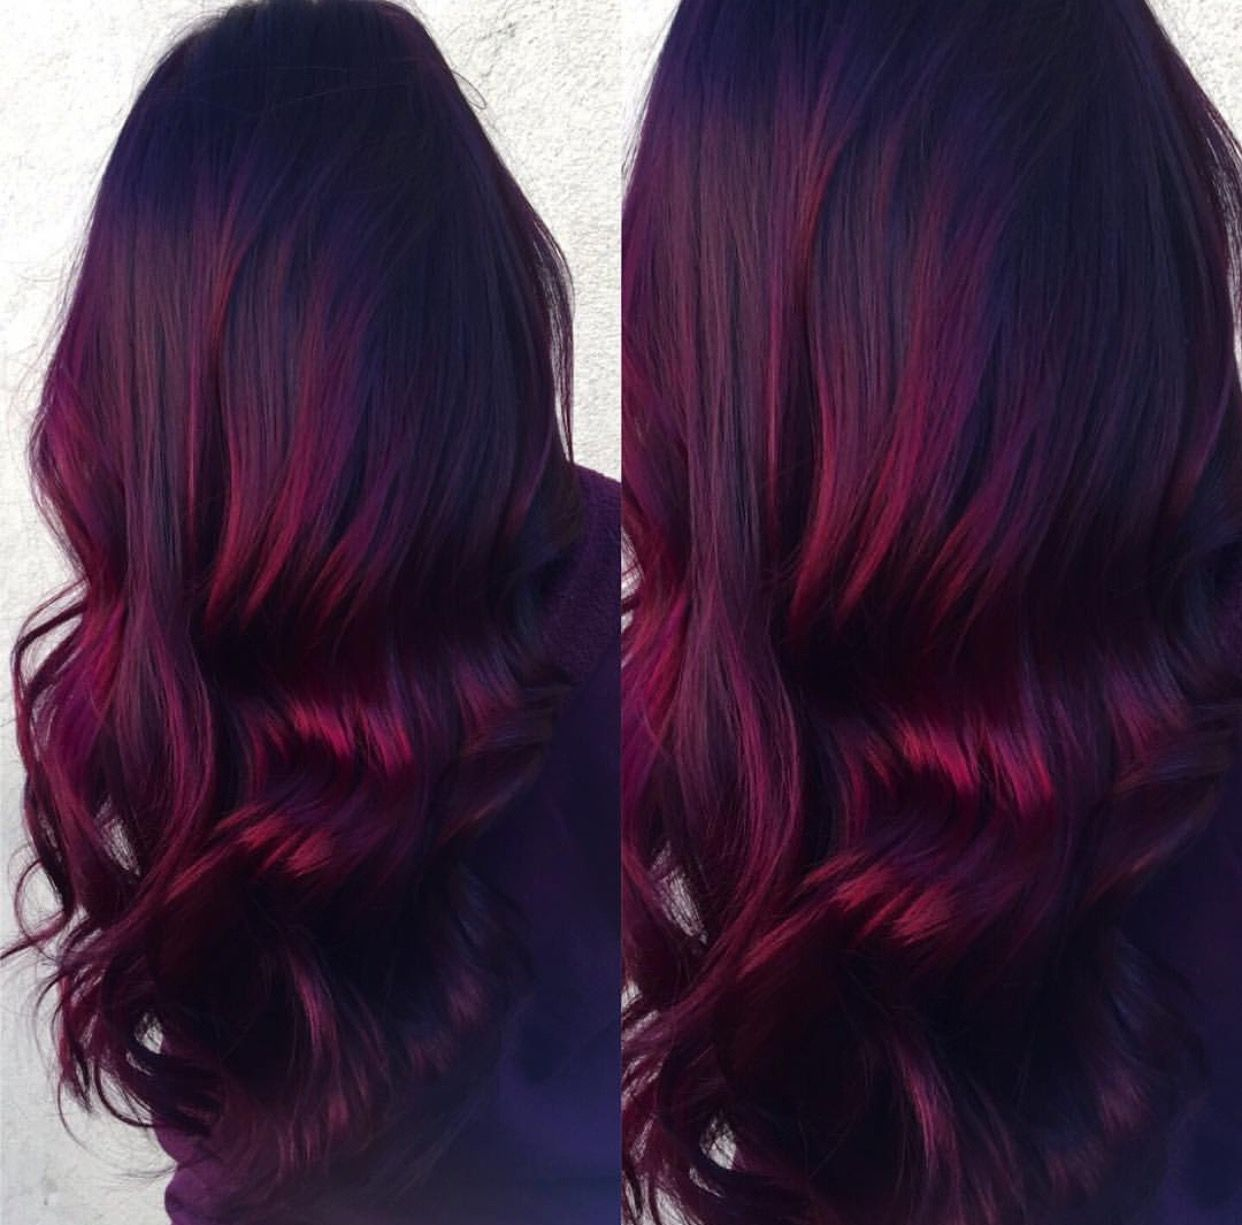 Haarfarbe Dunkelrot Lila Red Velvet Balayage Dark Roots With Vibrant Burgundy